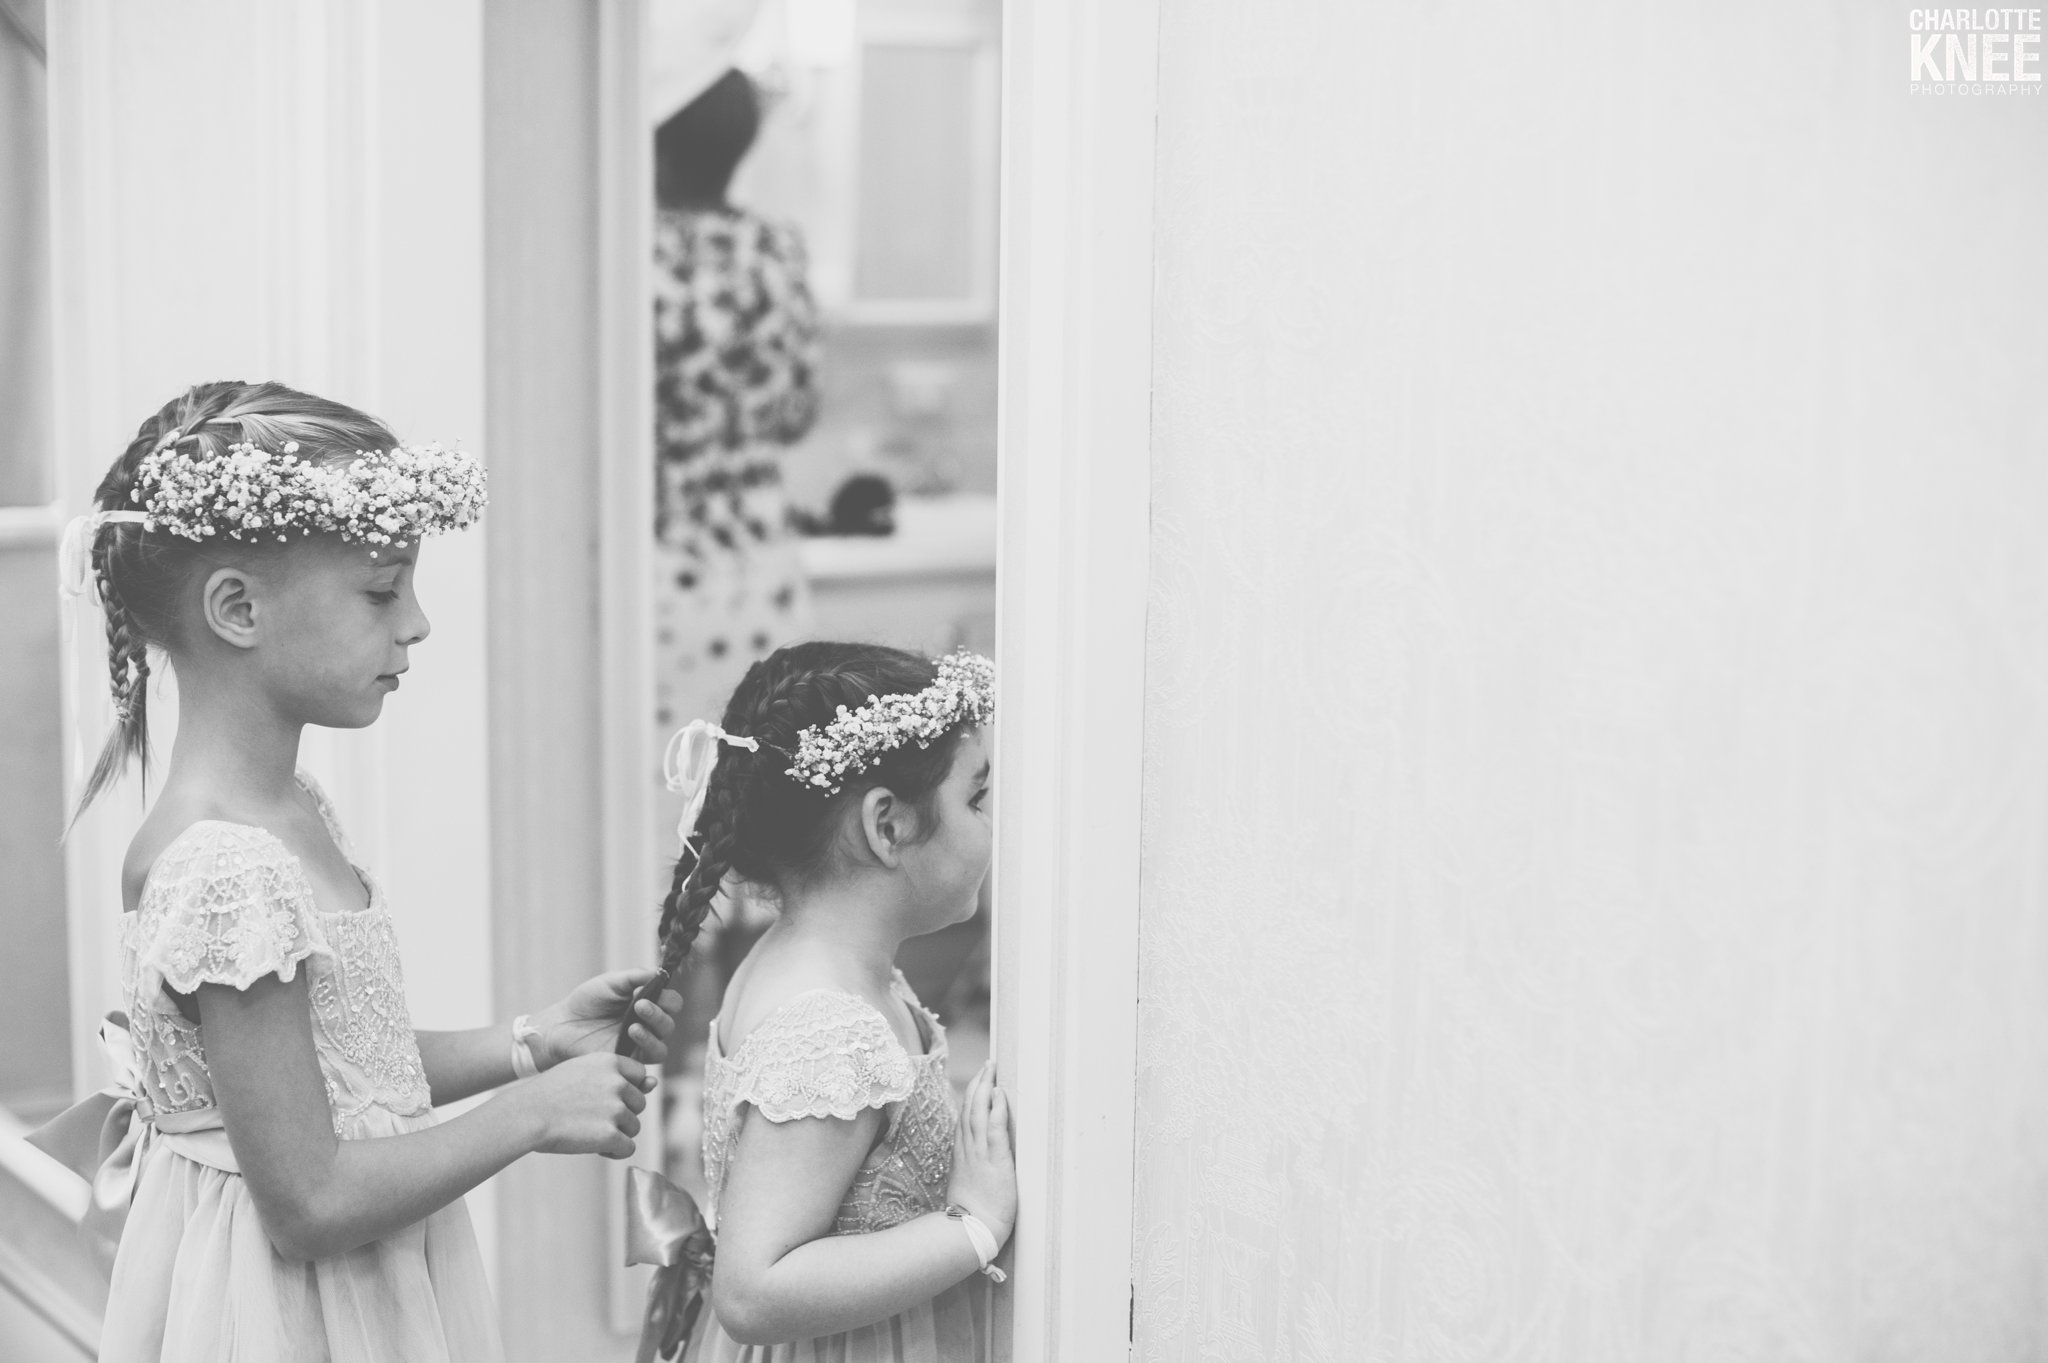 Saddlers Hall London Wedding Photography Copyright Charlotte Knee Photography_0038.jpg